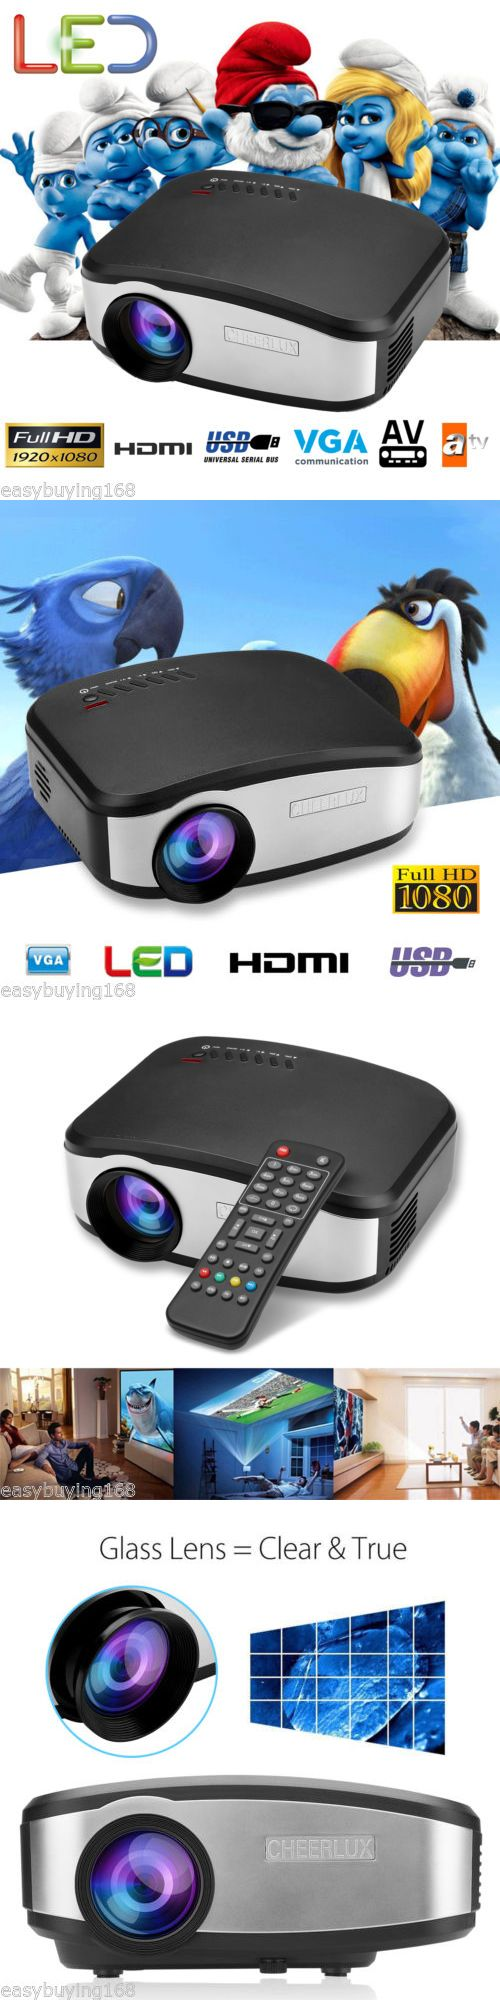 Home Theater Projectors: Led Lcd Hd 1080P 3D Projector Multimedia Home Theater Cinema Hdmi Usb Vga Av Atv -> BUY IT NOW ONLY: $65.99 on eBay!